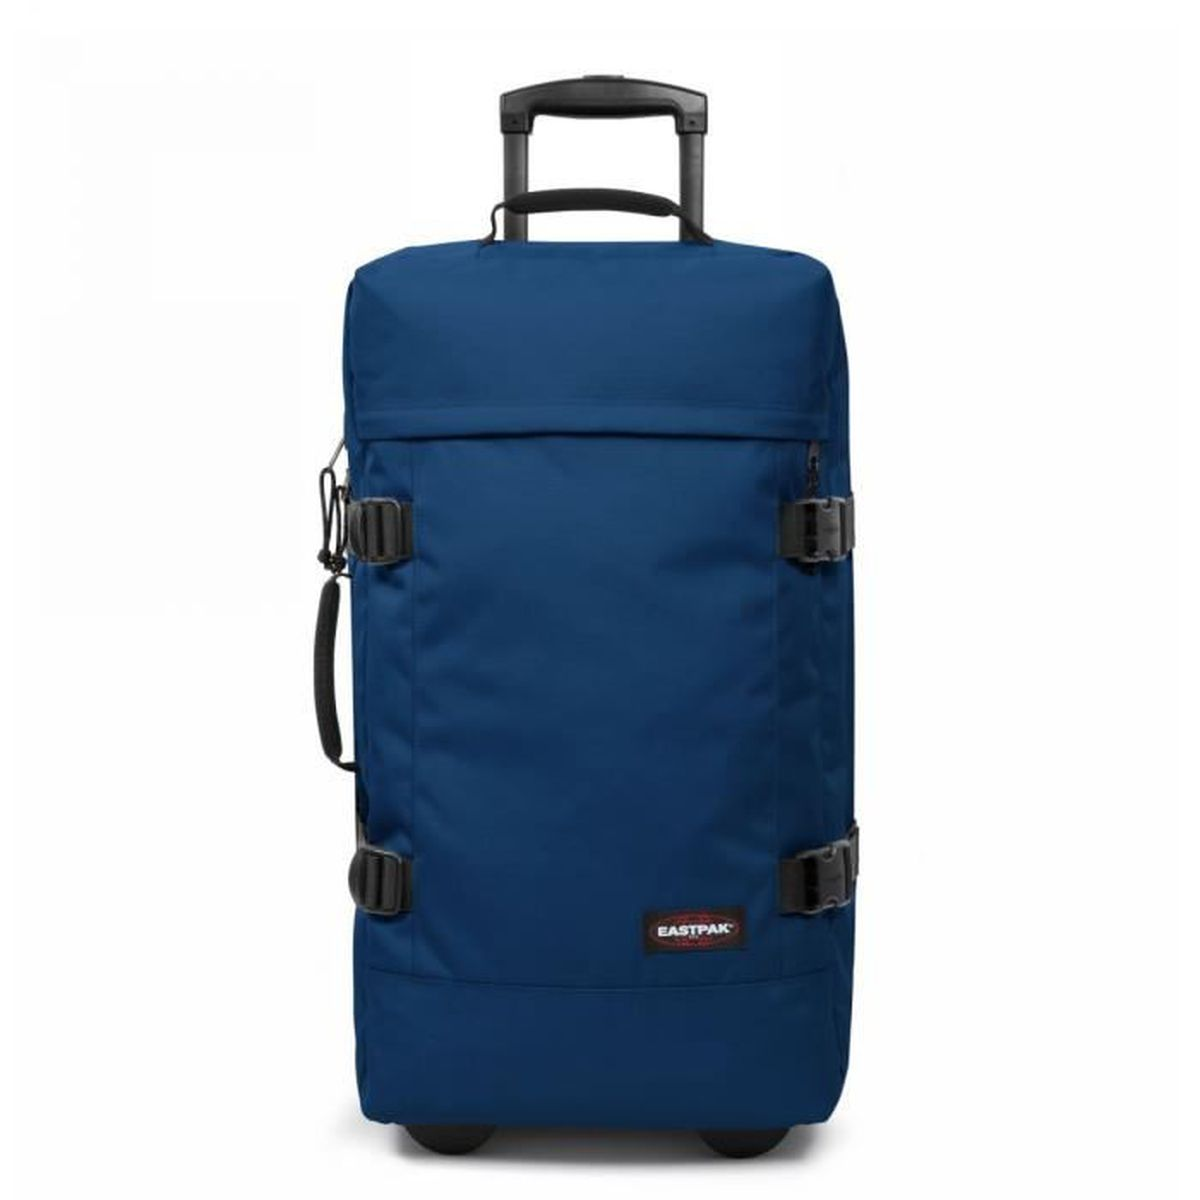 A 33n Sac Tranverz Movienight Authentic Blue Roulettes Eastpak 66 pxZqwHw5v